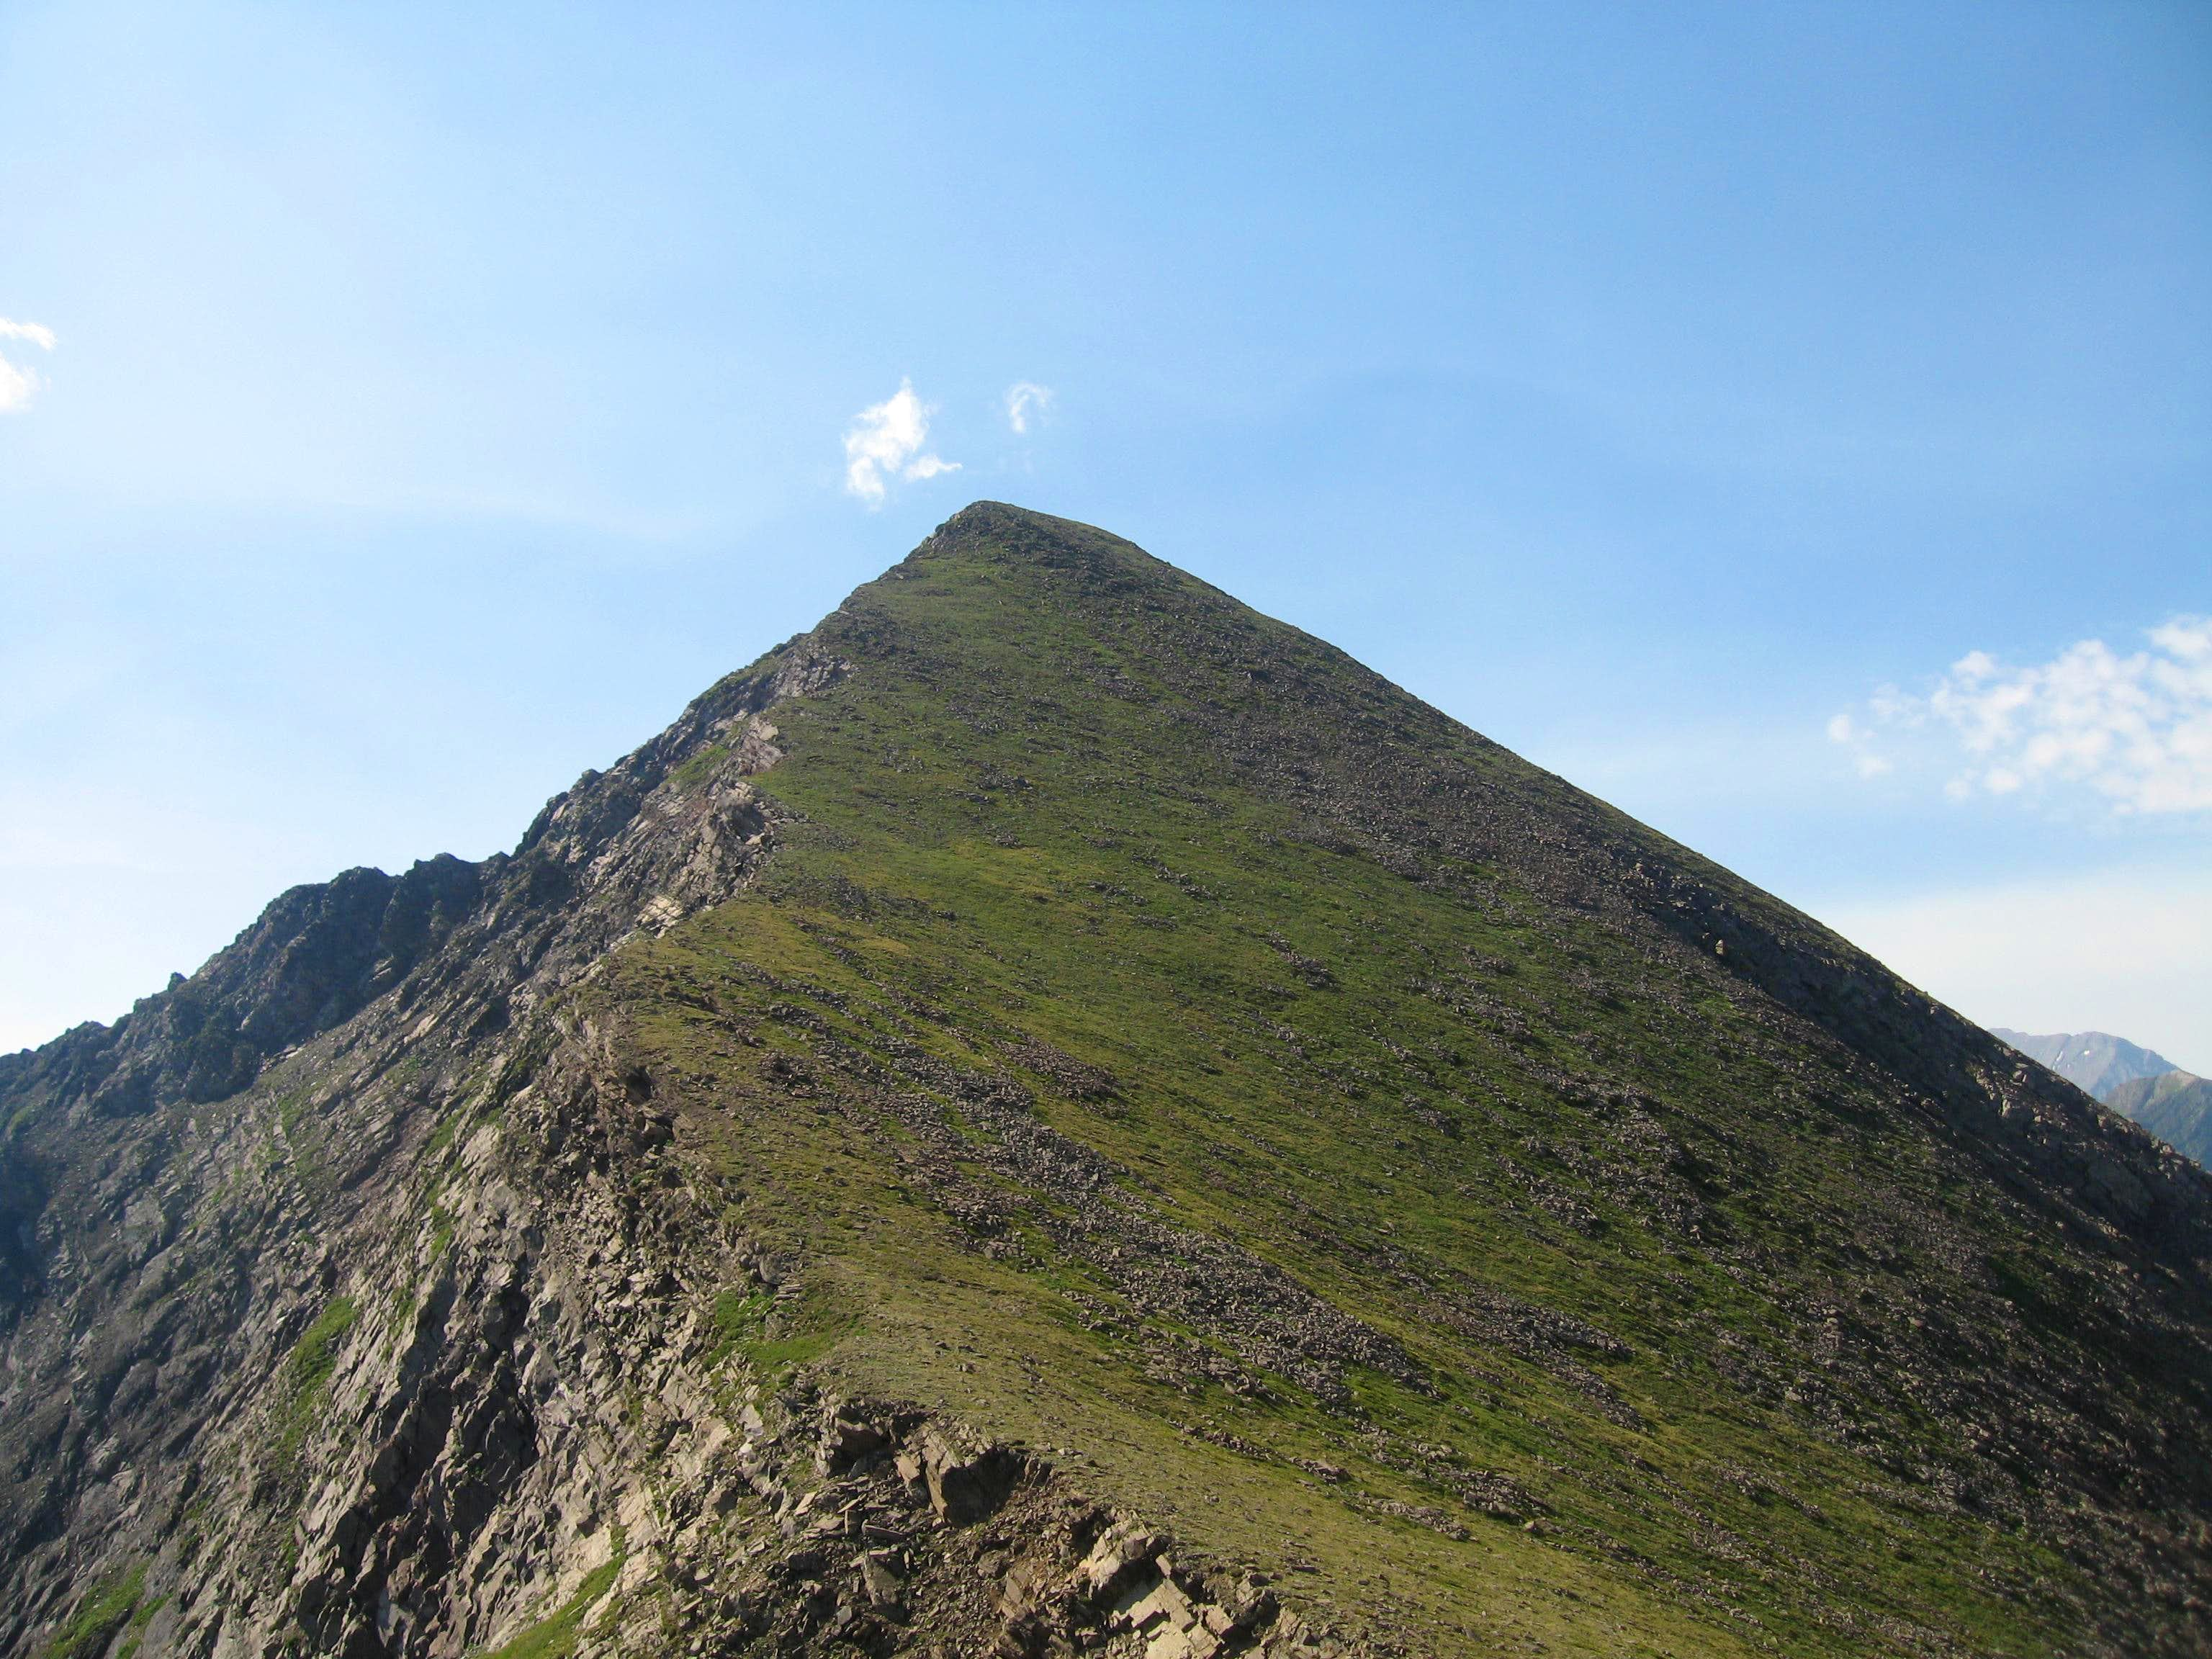 Venable Peak, Comanche Peak, Spring Mountain, 12873, Round Mountain, Bull Domingo Hills, Beckwith Mountain & Democratic Mountain